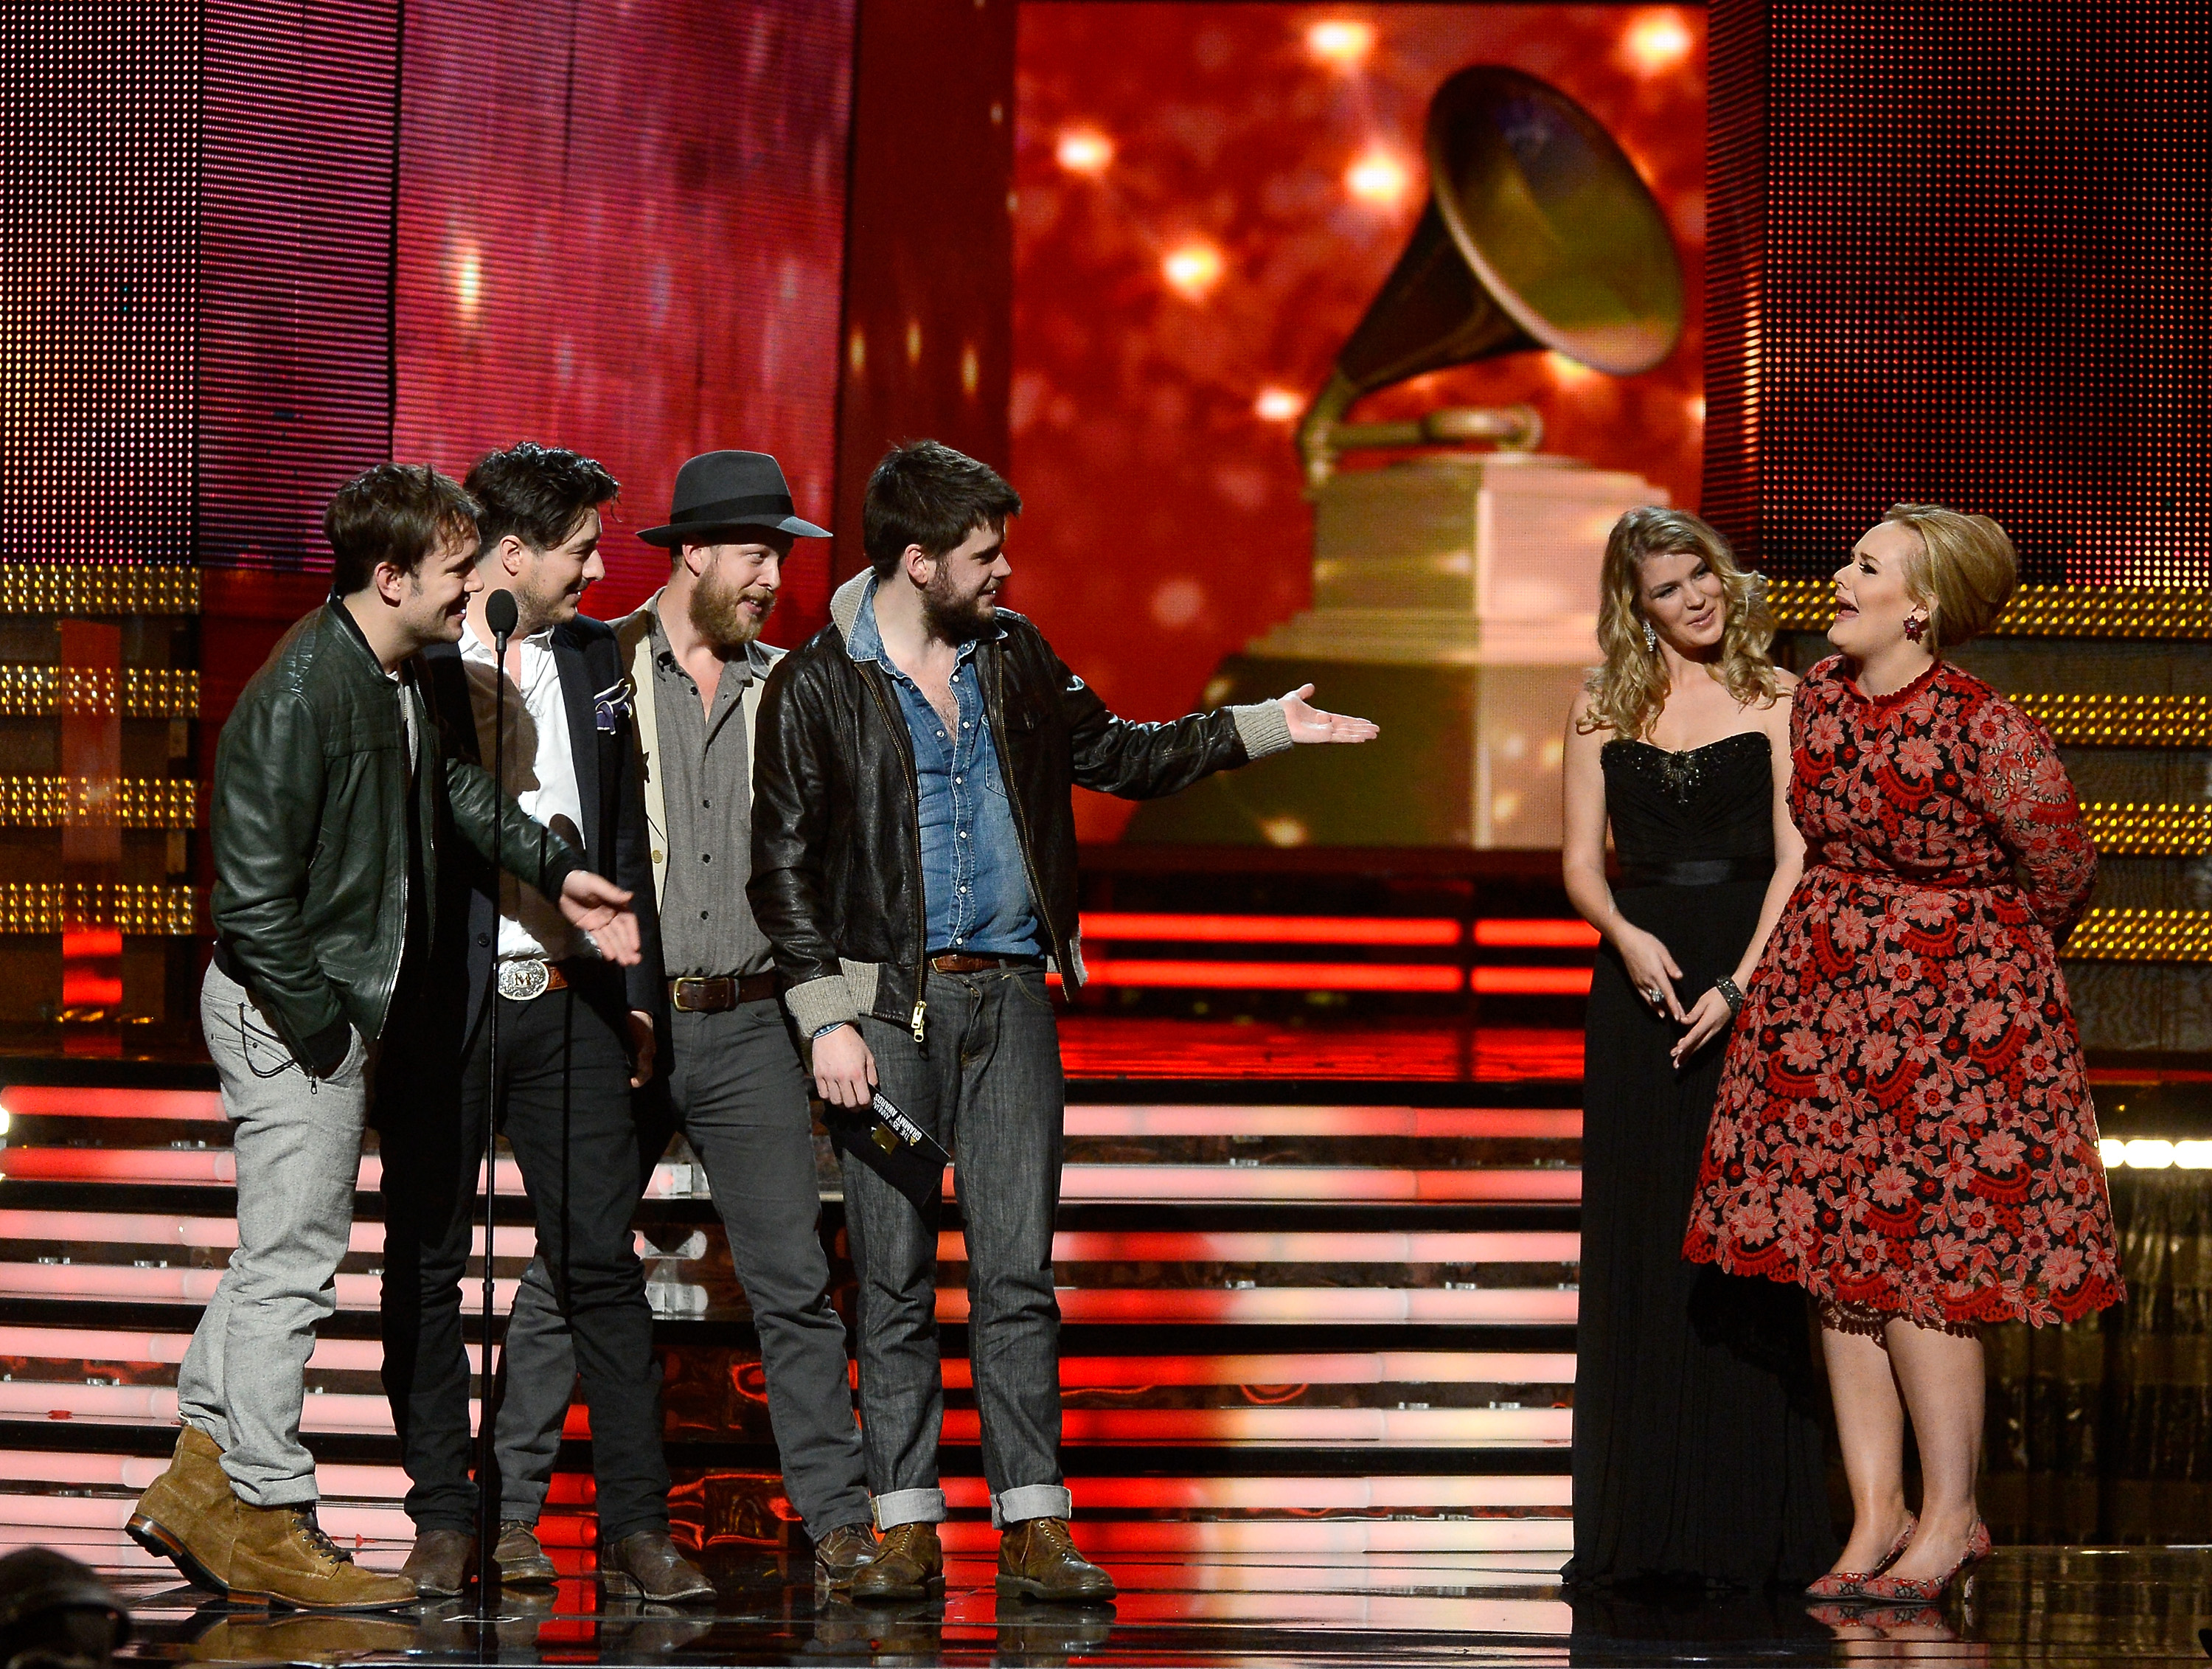 Adele joked around with Mumford & Sons onstage.